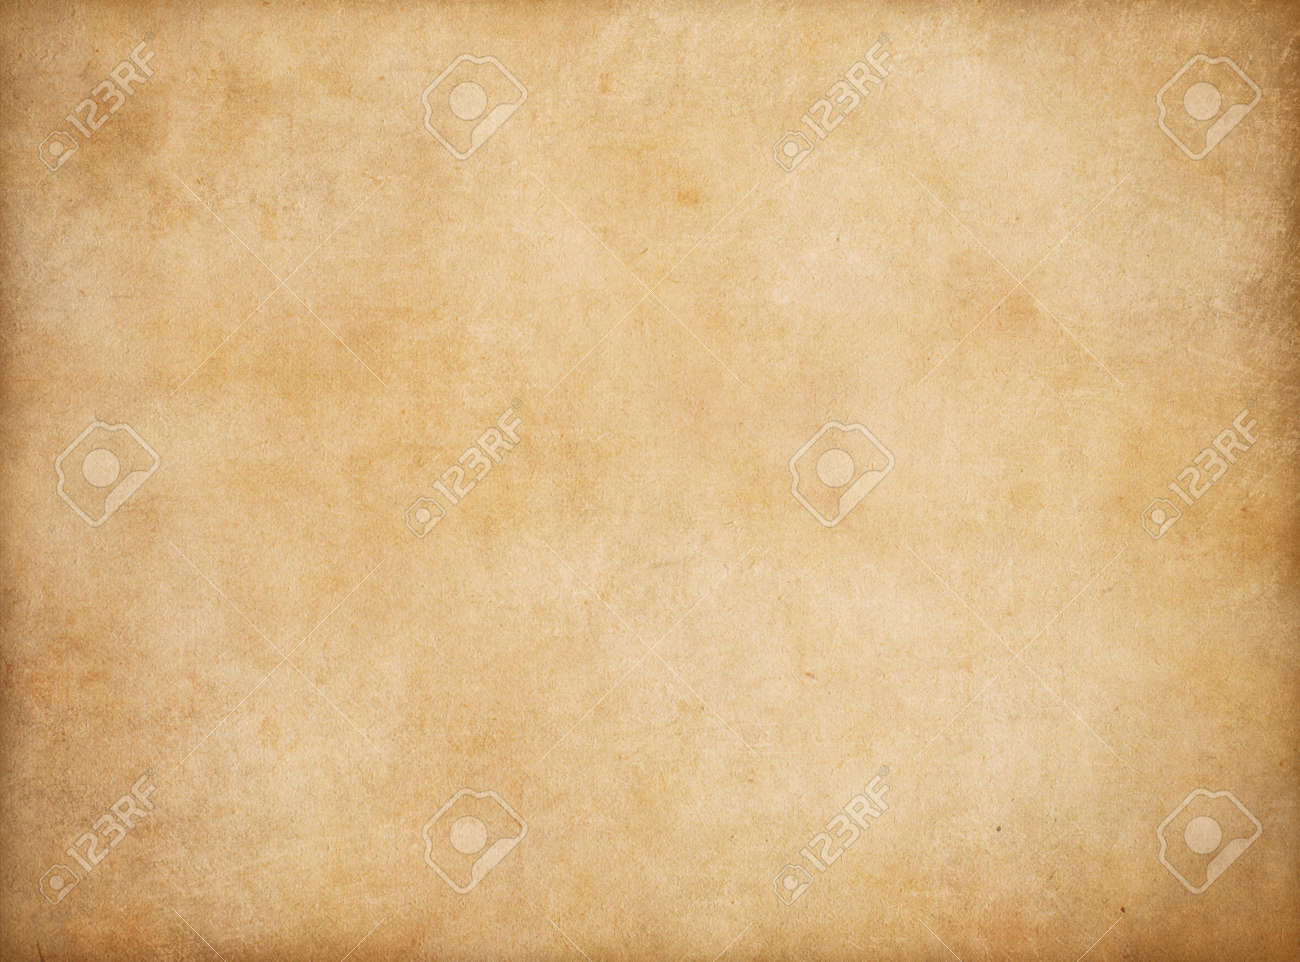 old paper or treasure map texture background - 168335074